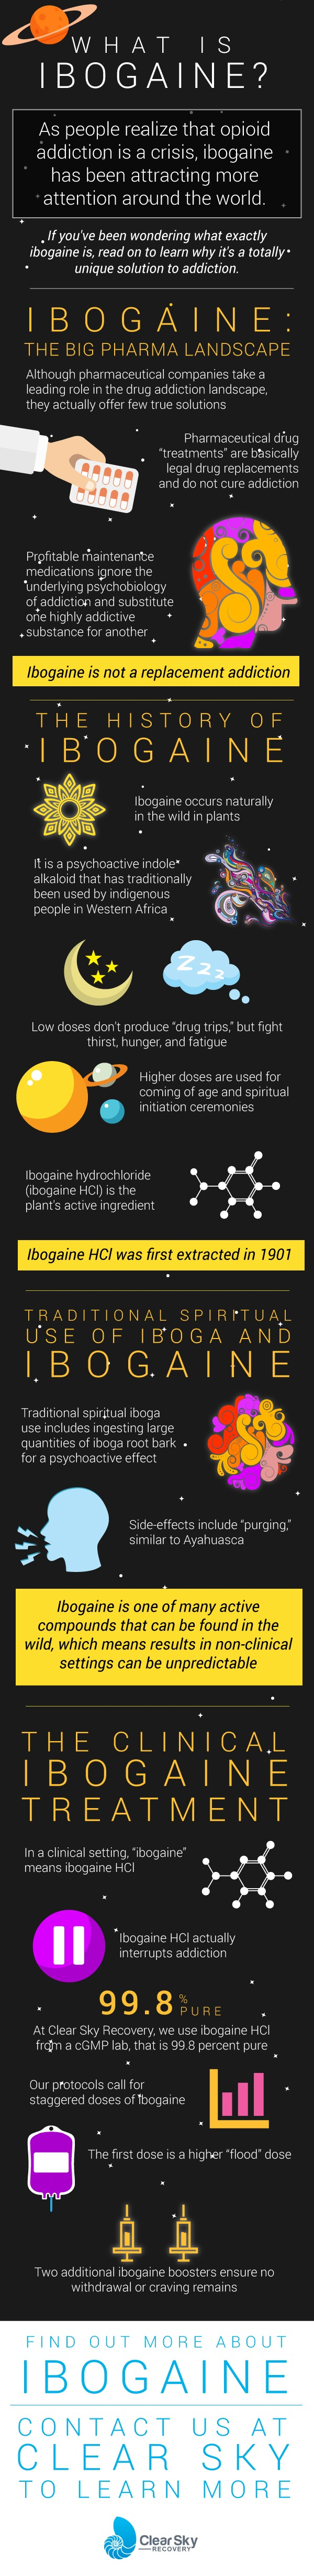 What Is Ibogaine - Infographic - V1